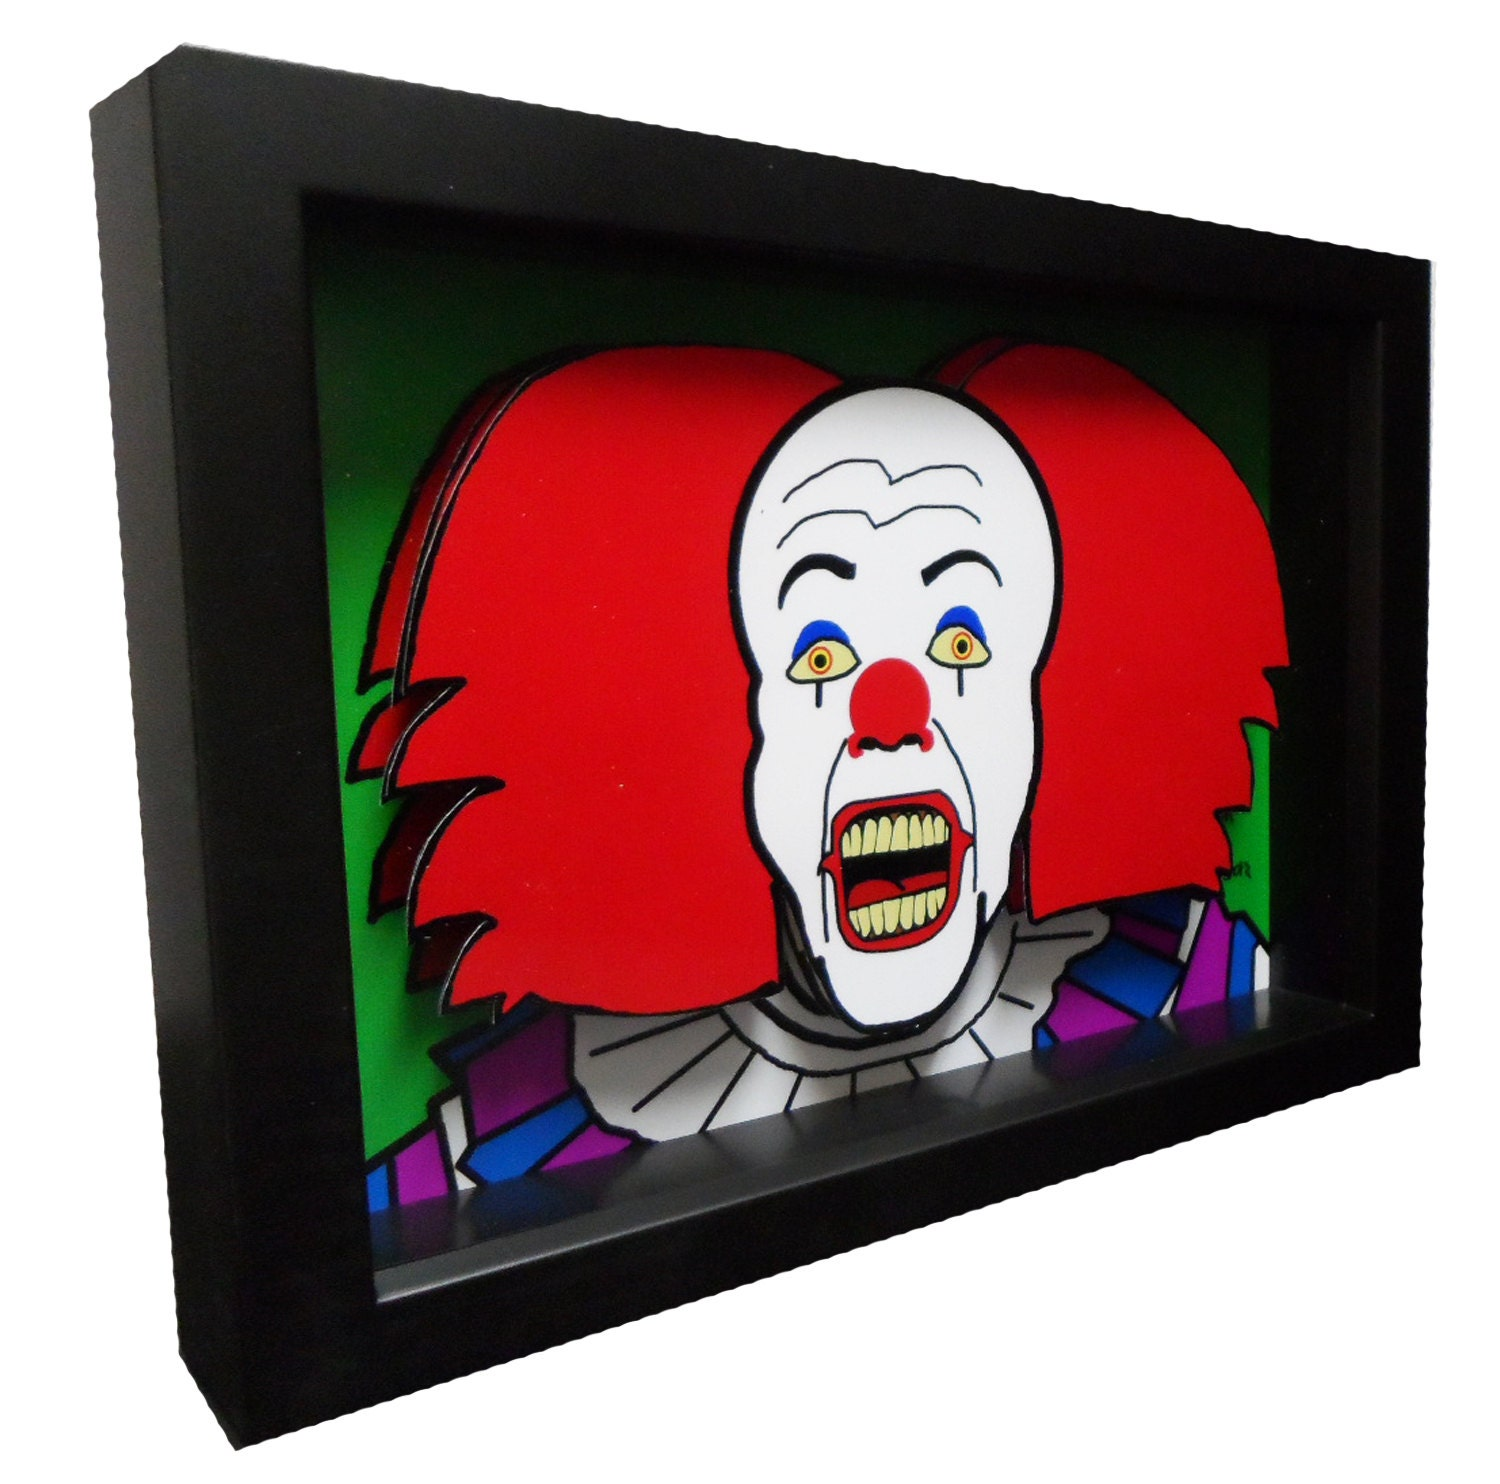 stephen king movie art it pennywise clown 3d art pop horror. Black Bedroom Furniture Sets. Home Design Ideas